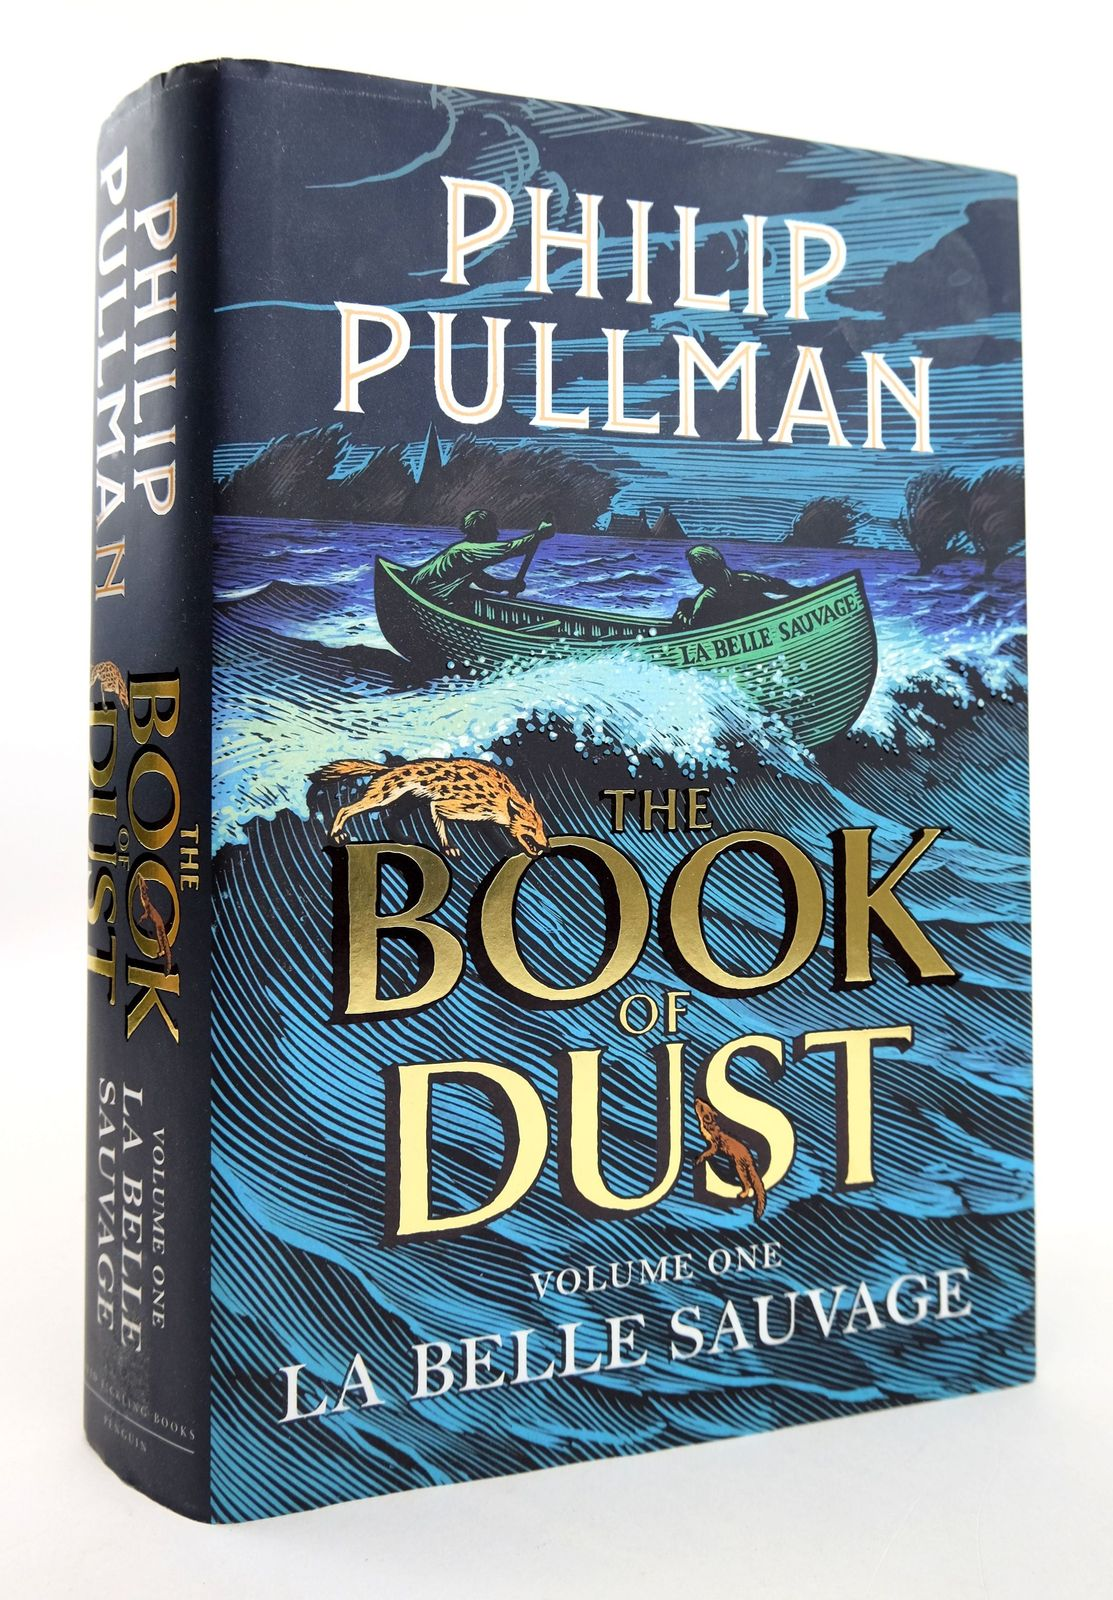 Photo of THE BOOK OF DUST VOLUME ONE: LA BELLE SAUVAGE- Stock Number: 1818913